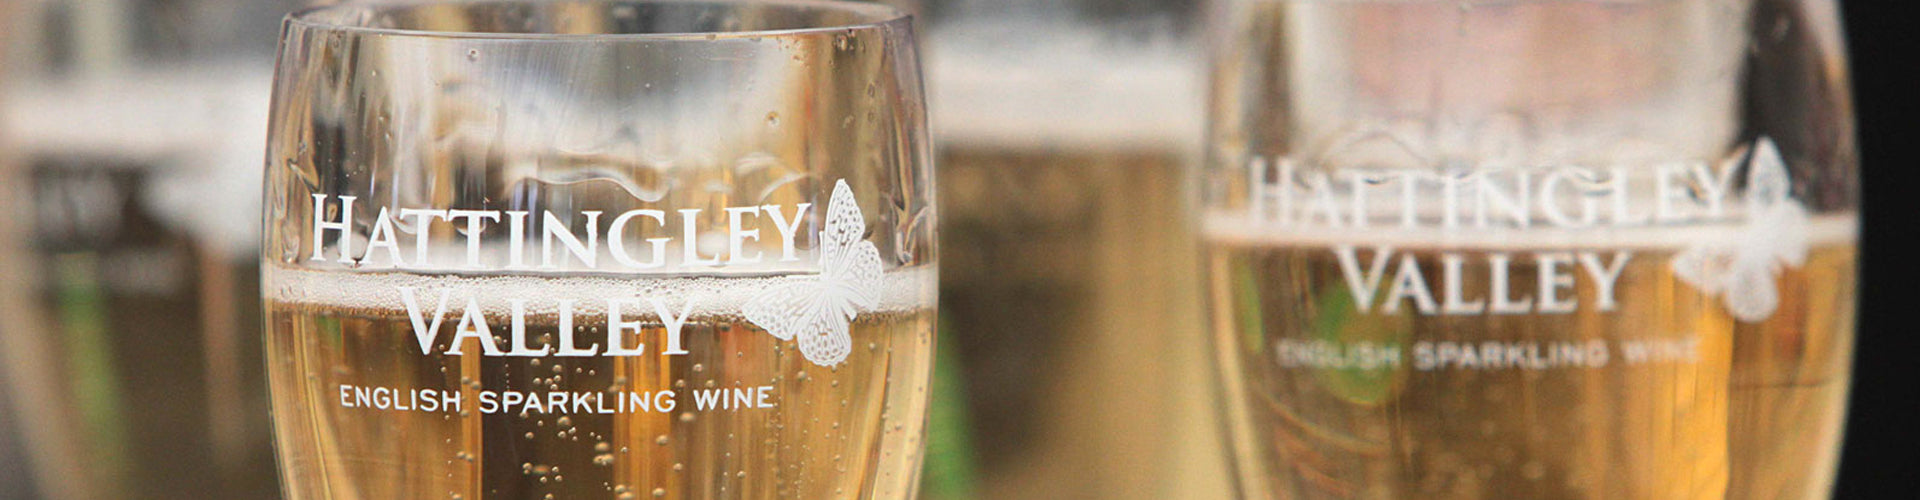 Hattingley Valley English Sparkling Wines from Hampshire